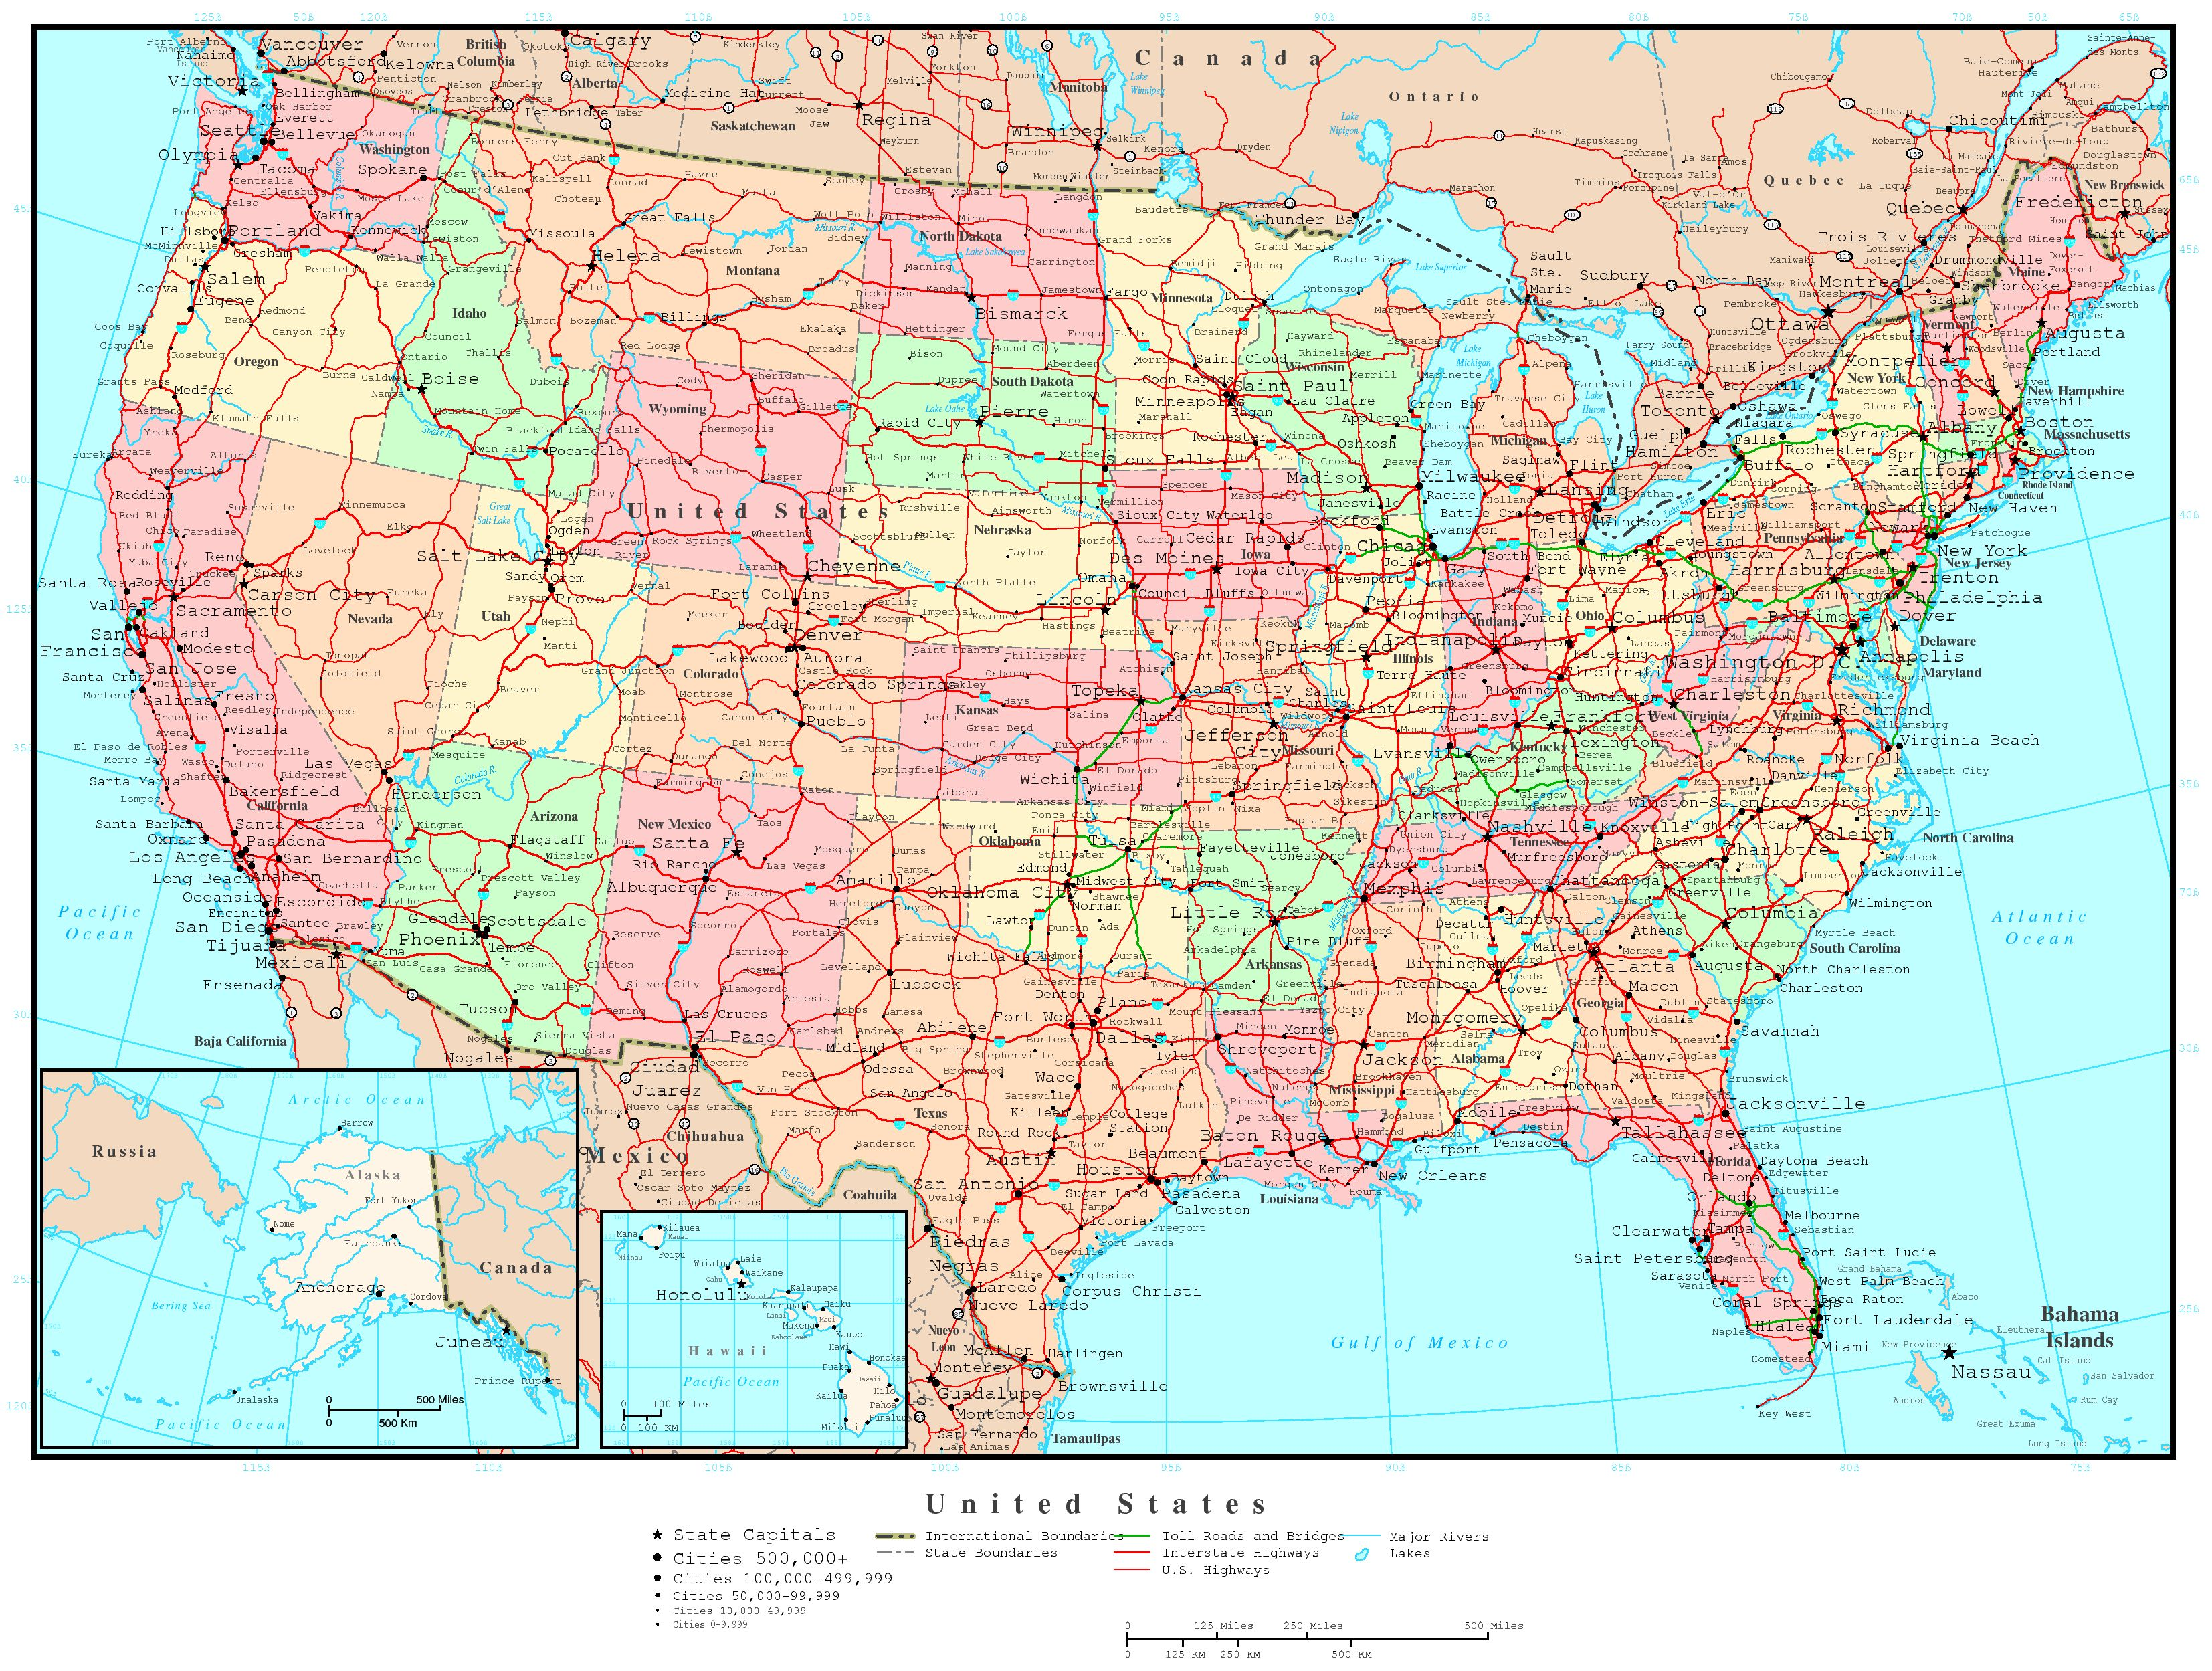 Picture of: United States Political Map